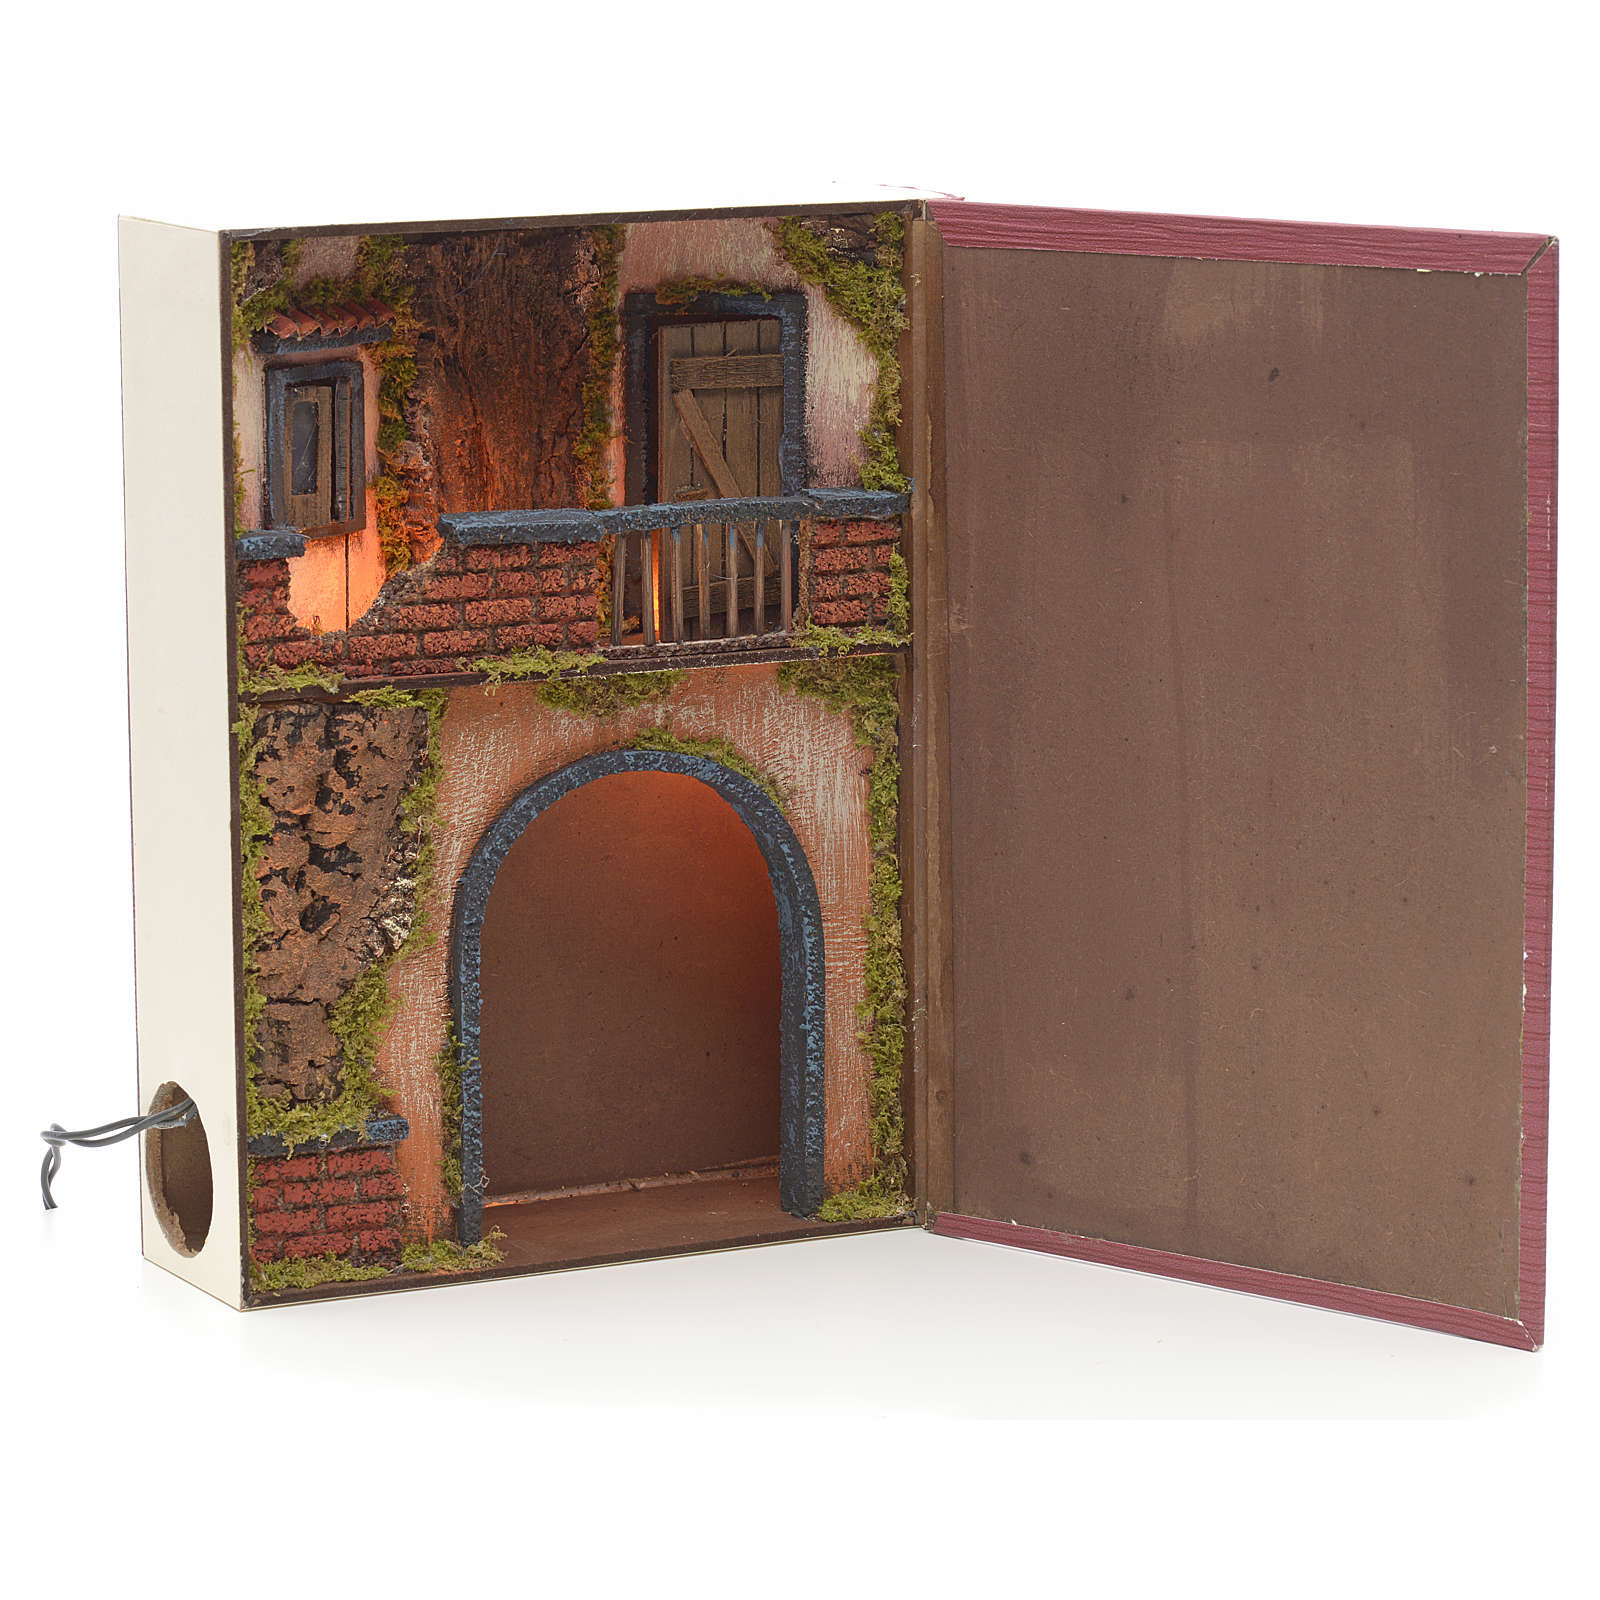 Illuminated village with balcony for nativities inside a book 30 4